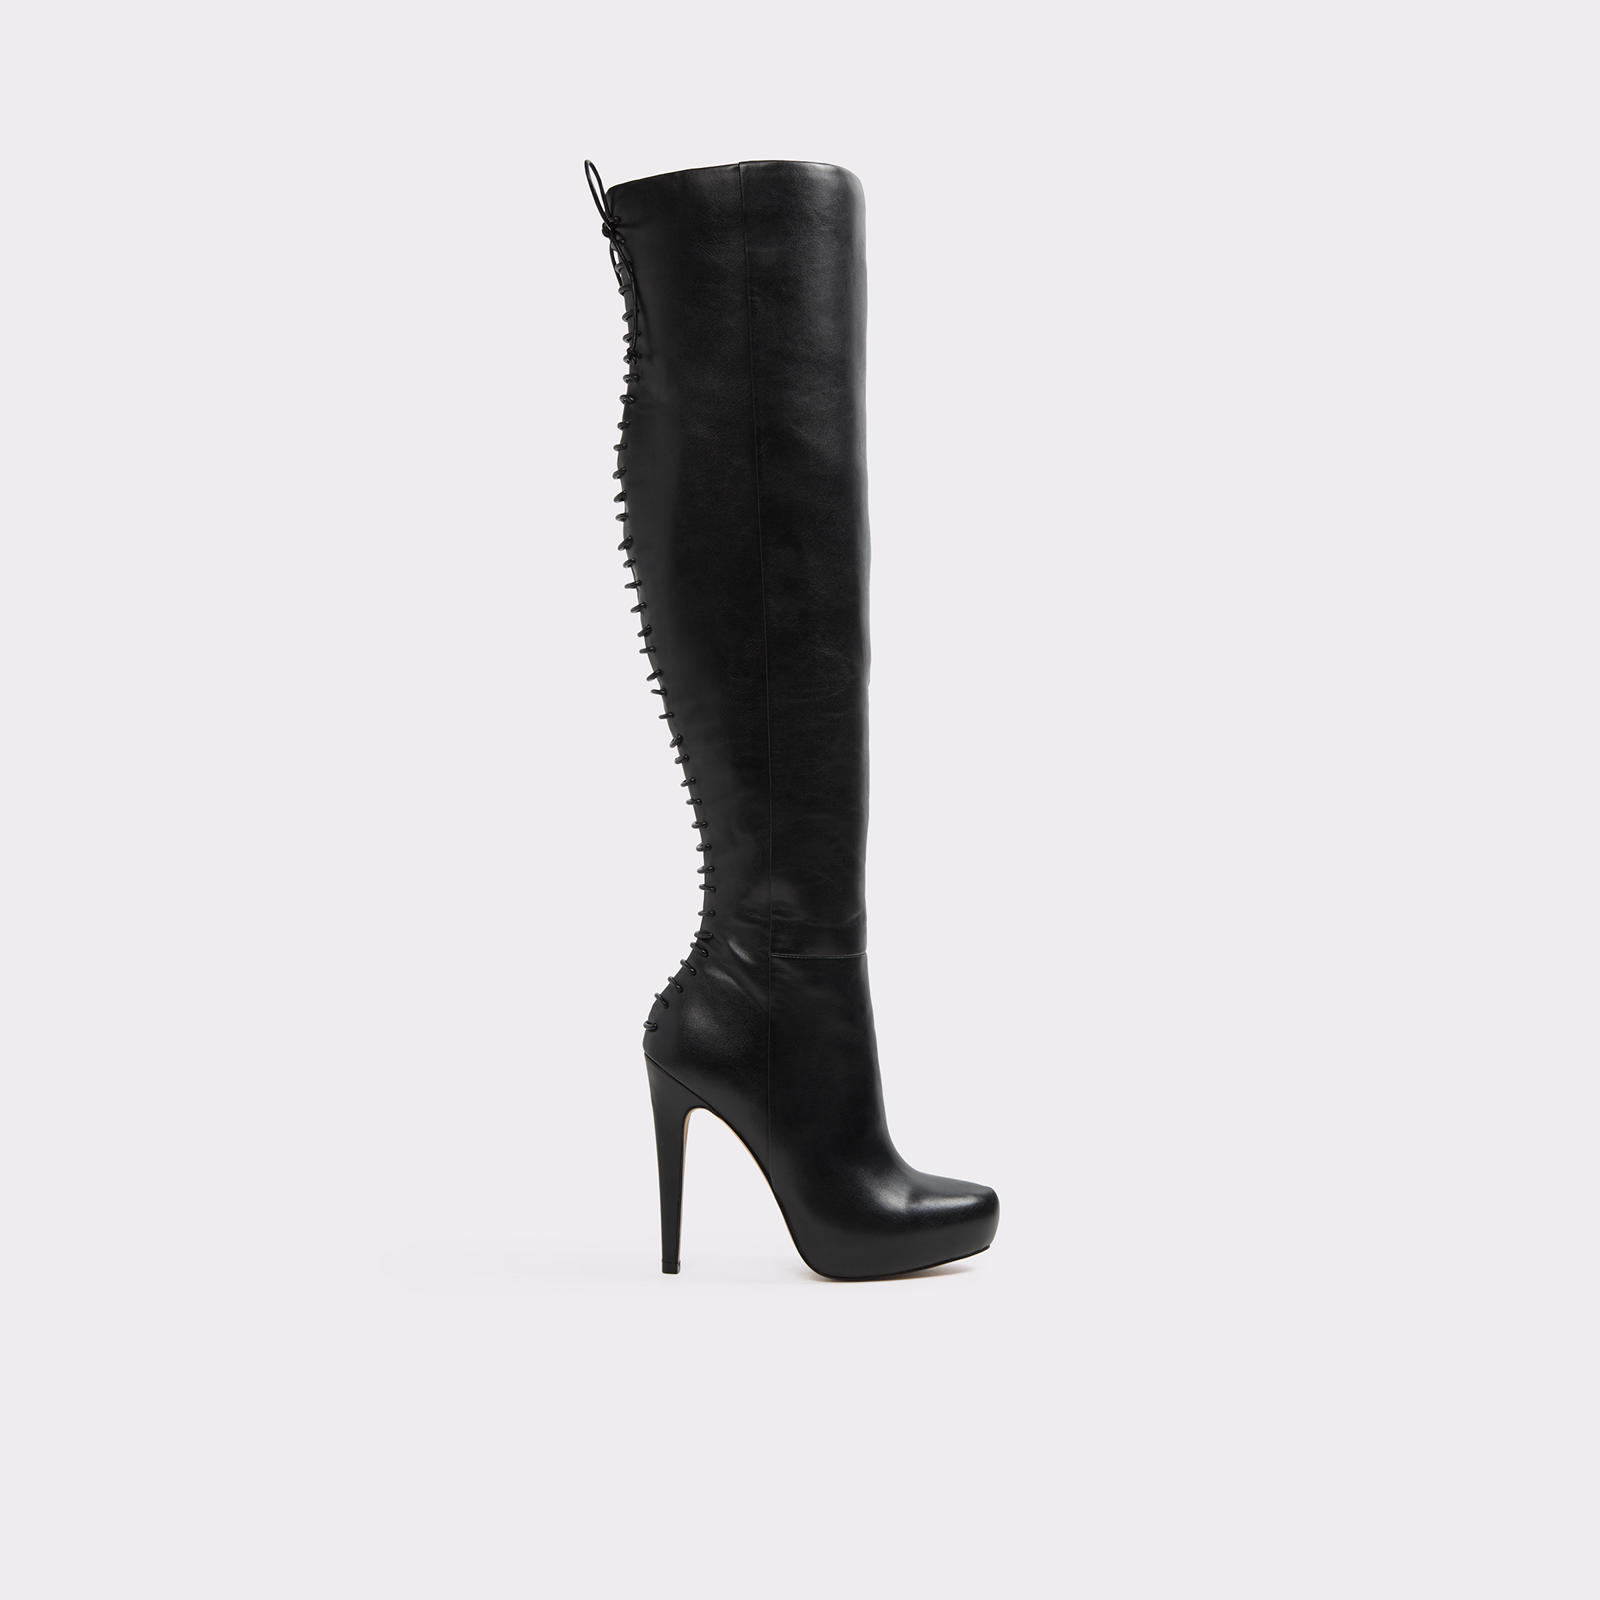 Graziella Black Knee-High Boots